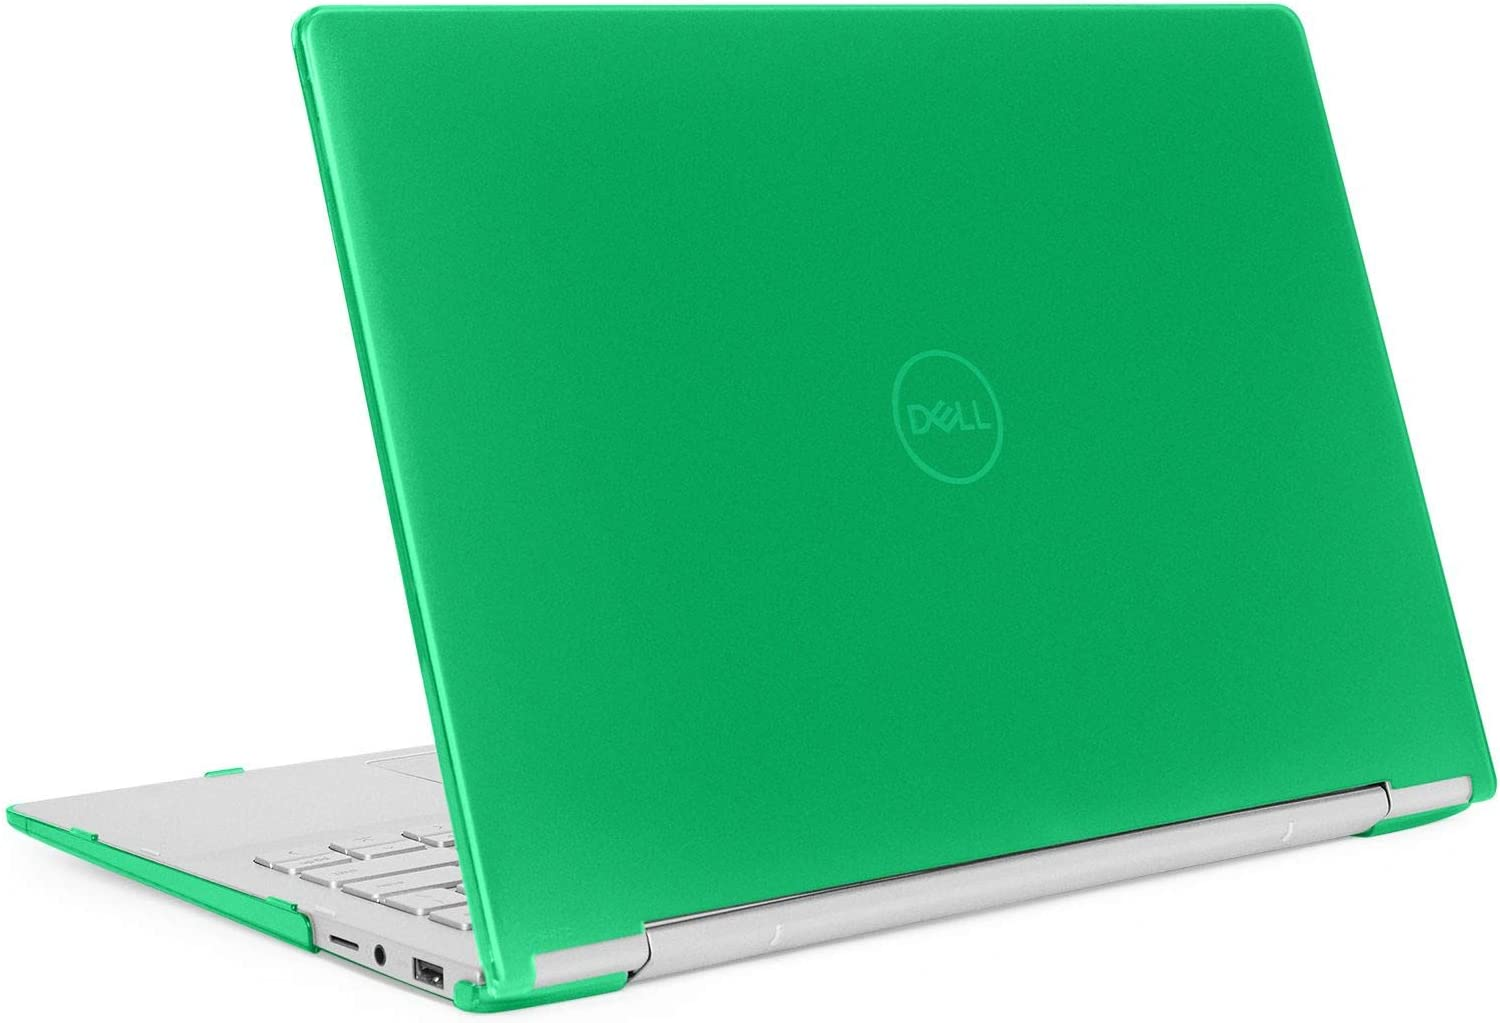 "mCover Hard Shell Case for 13.3"" Dell Inspiron 13 7391 2-in-1 Convertible Laptop Computers (Green)"